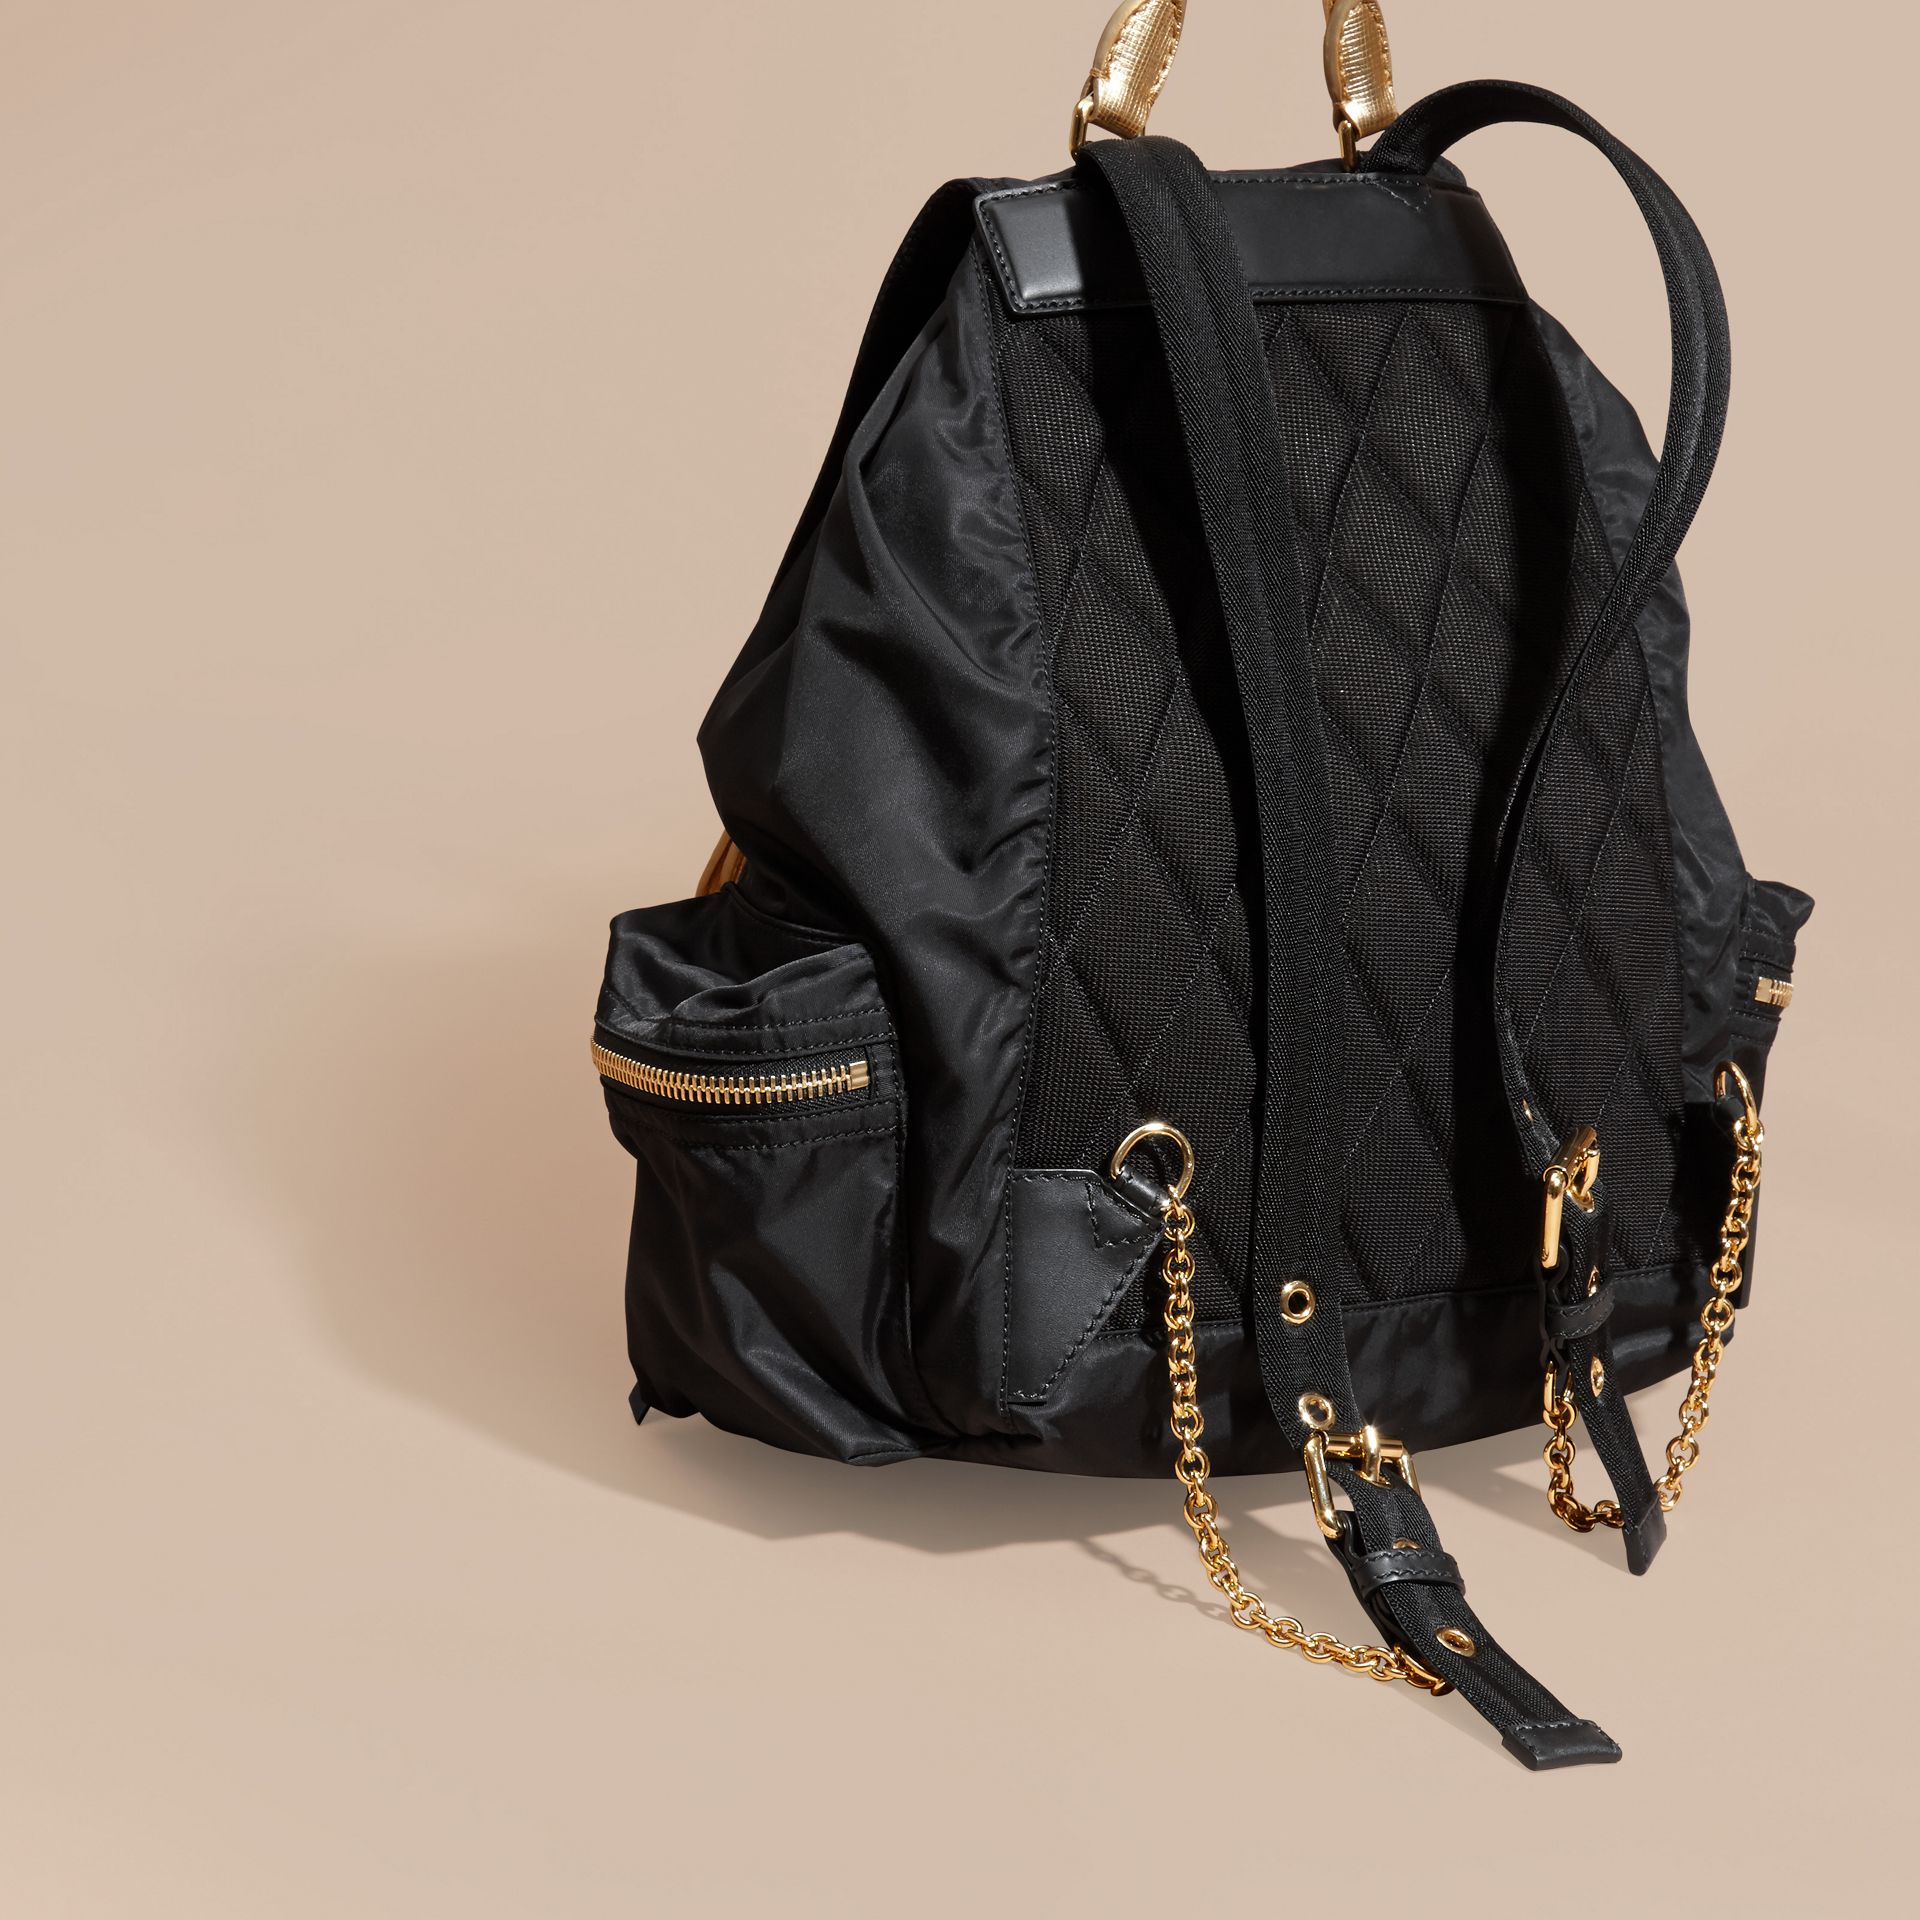 Grand sac The Rucksack en nylon bicolore et cuir - photo de la galerie 4